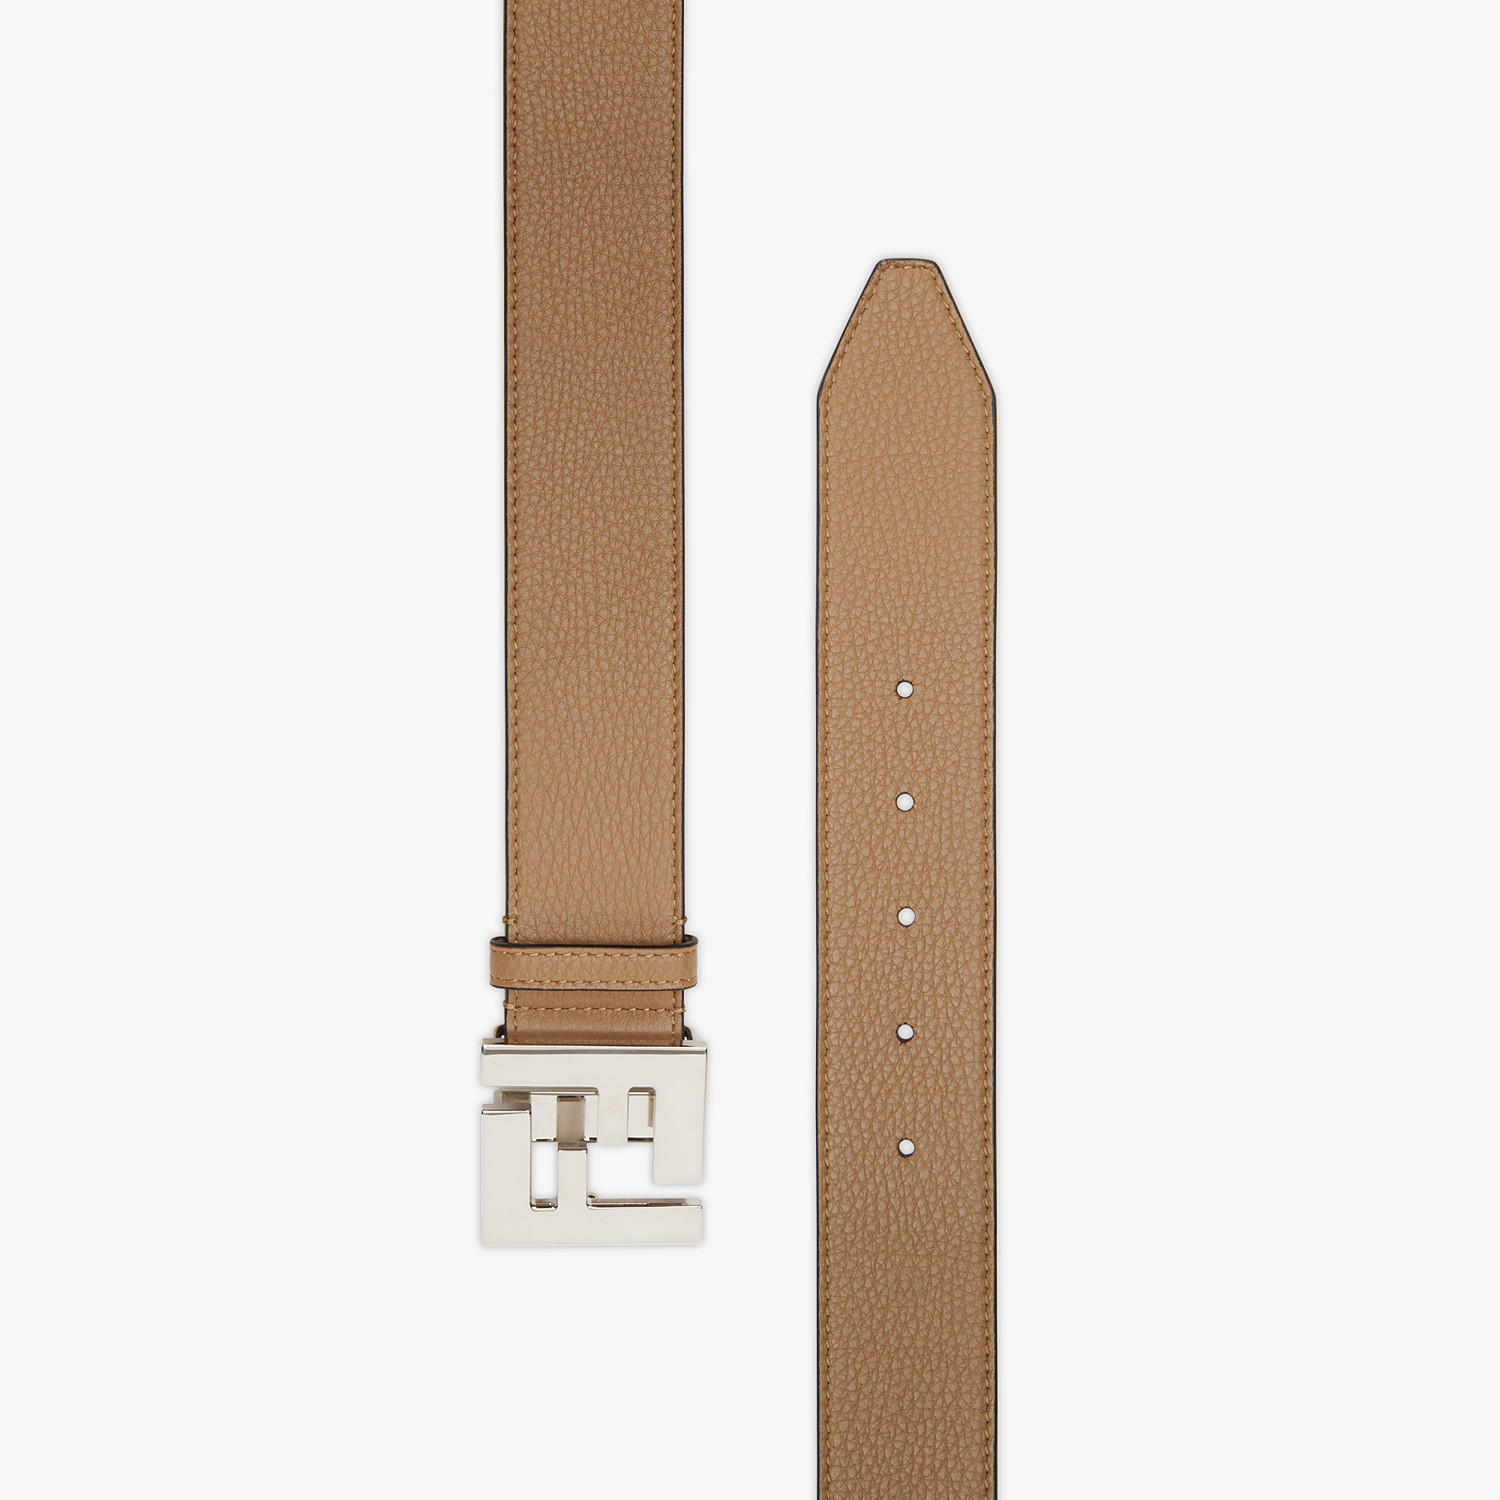 FENDI BELT - Beige leather belt - view 2 detail